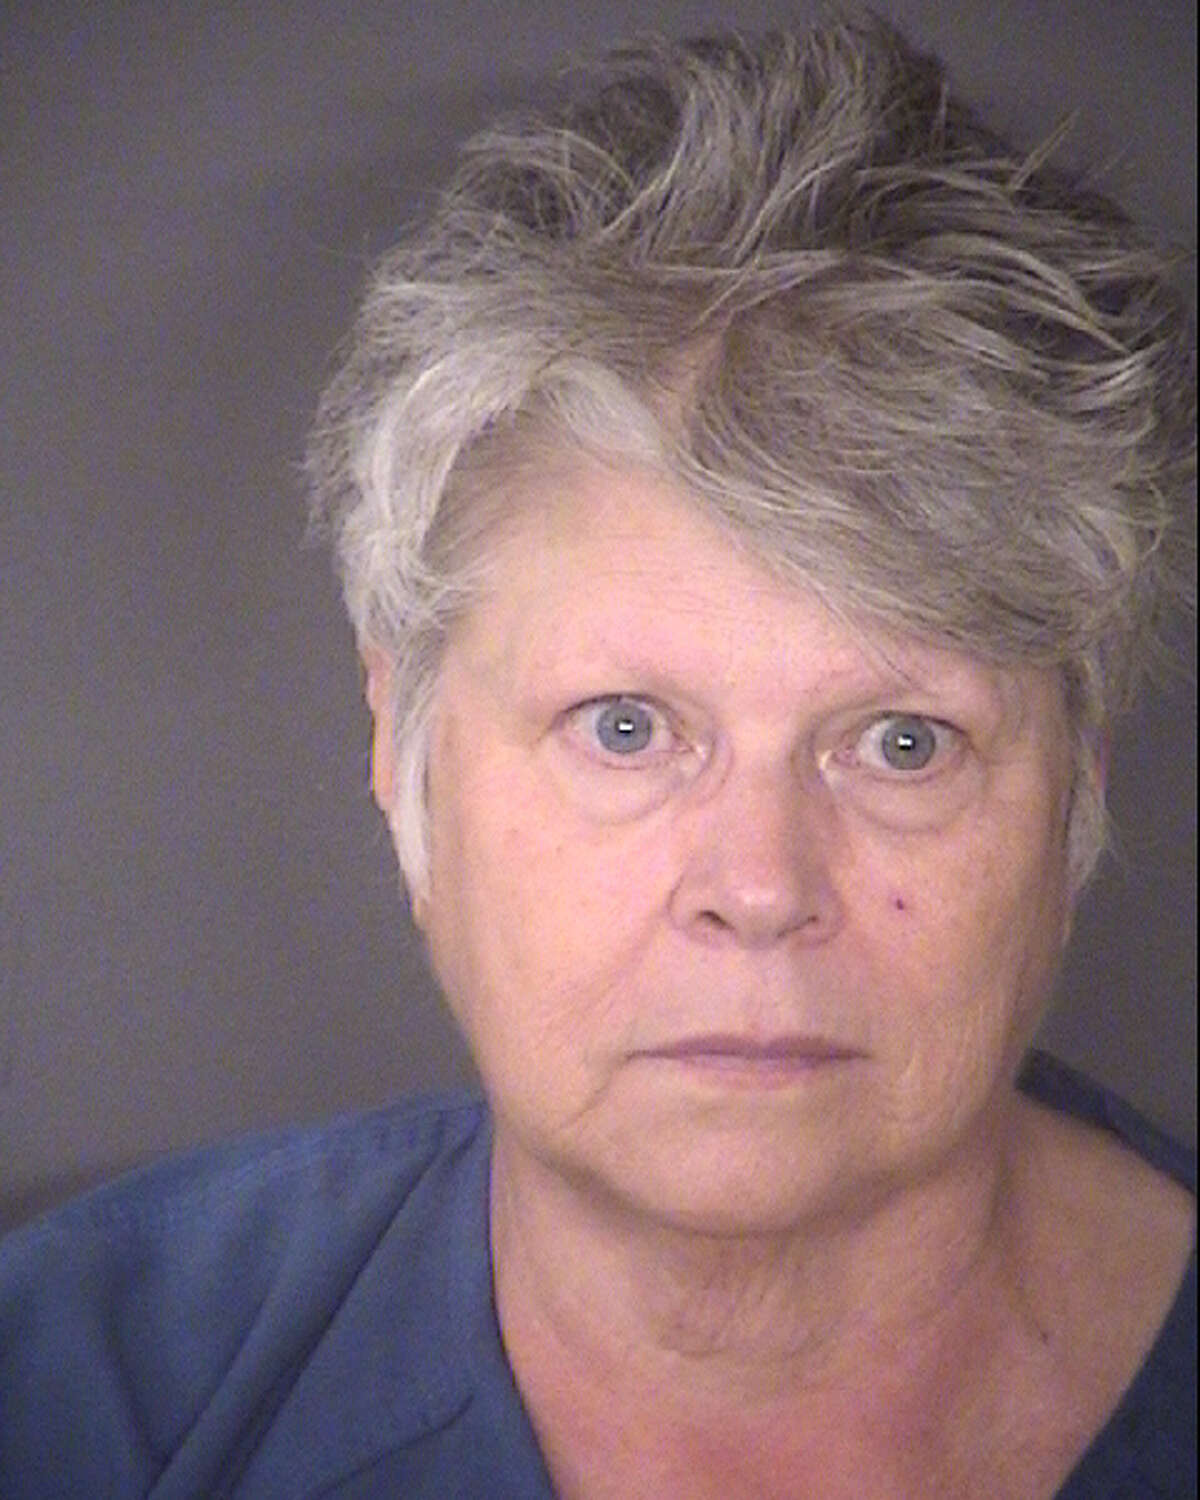 Angelika Stephanie Martina Navarro now faces theft charges and a charge of exploitation of an elderly individual, according to jail records. She was booked into the Bexar County Jail on a $30,000 bond.